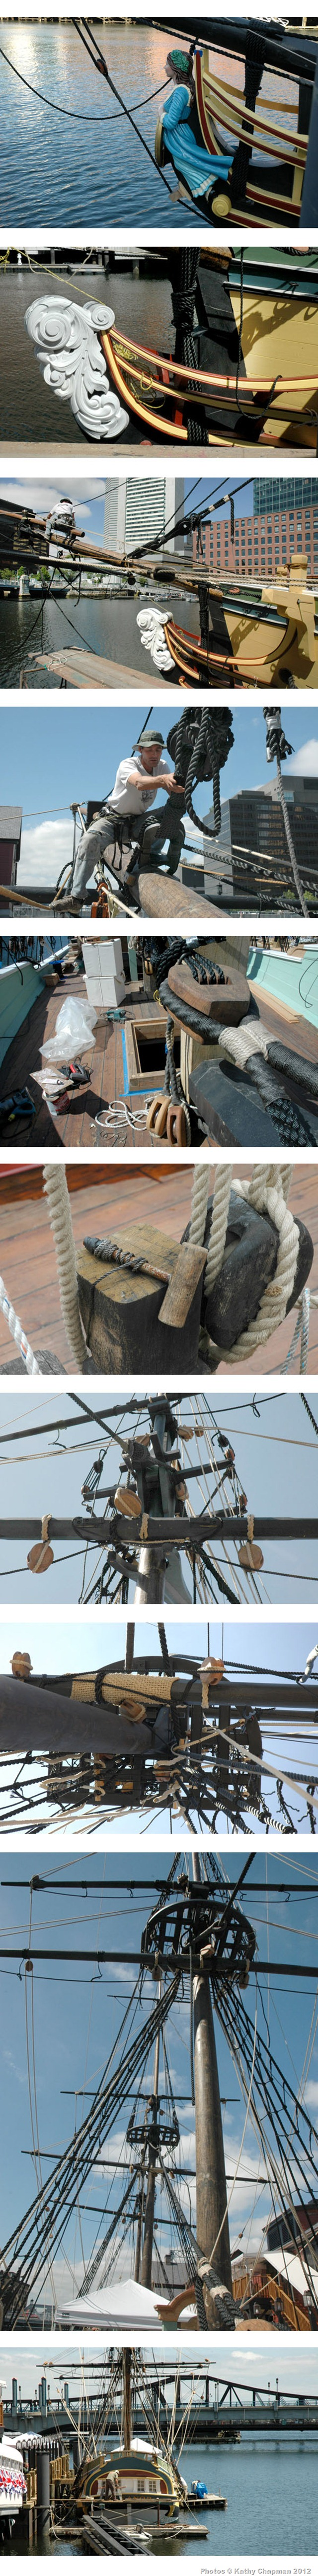 Rigging1962012a